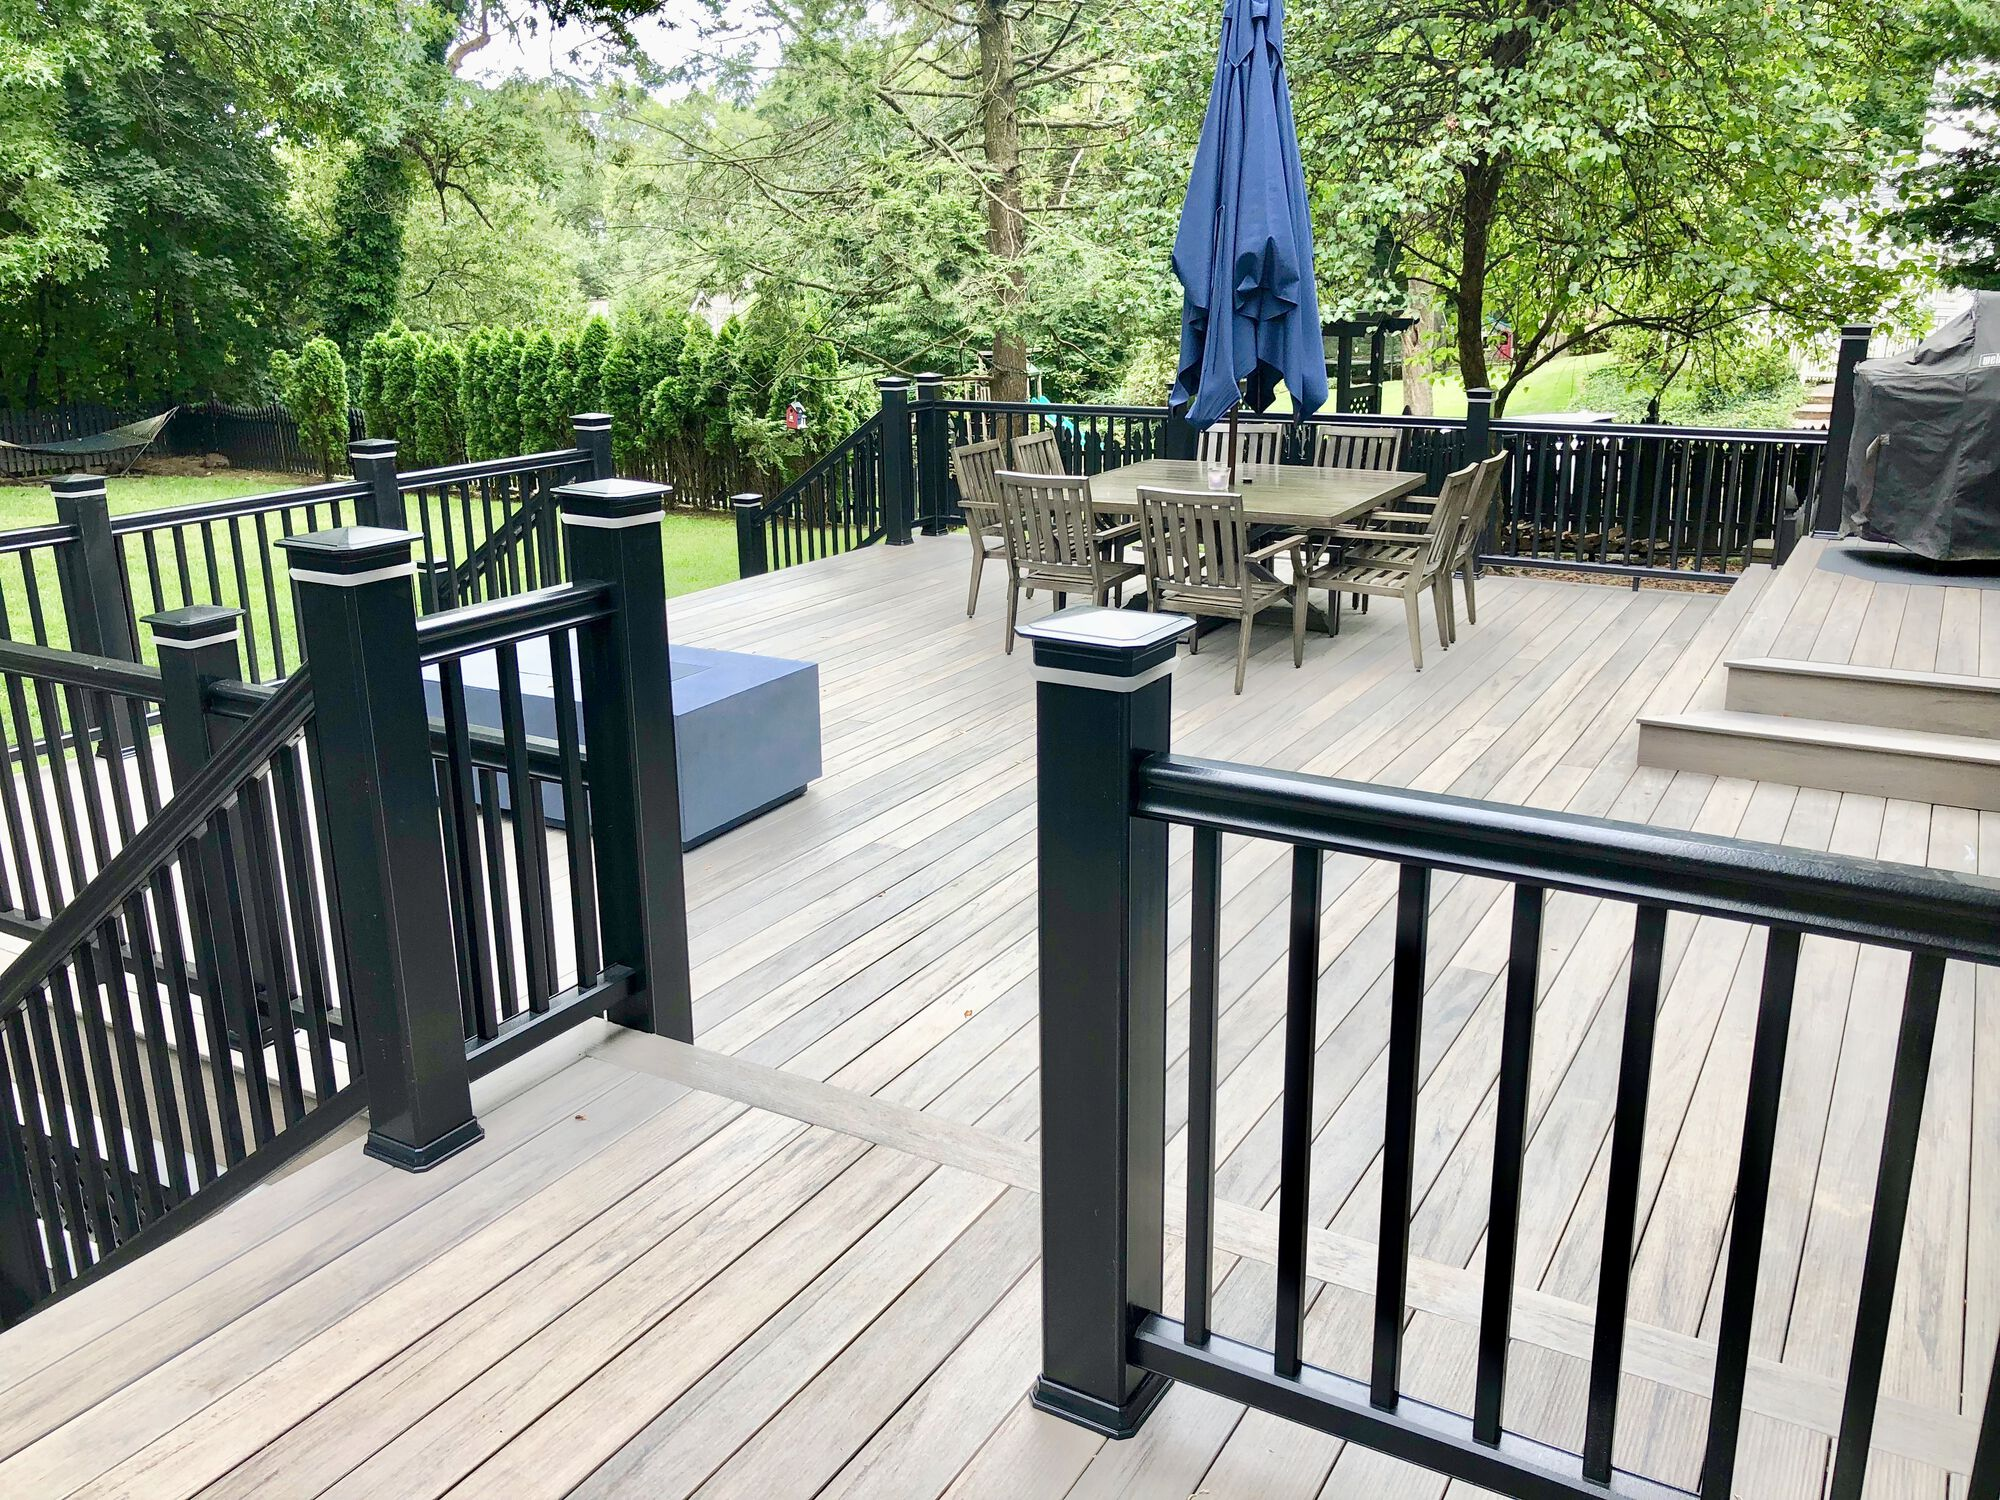 New Deck Build with Tretaed Framing, Timbertech Decking, Radiance Rails, LED Lighting, Gas Line for BBQ in Glen Rock, Bergen County NJ